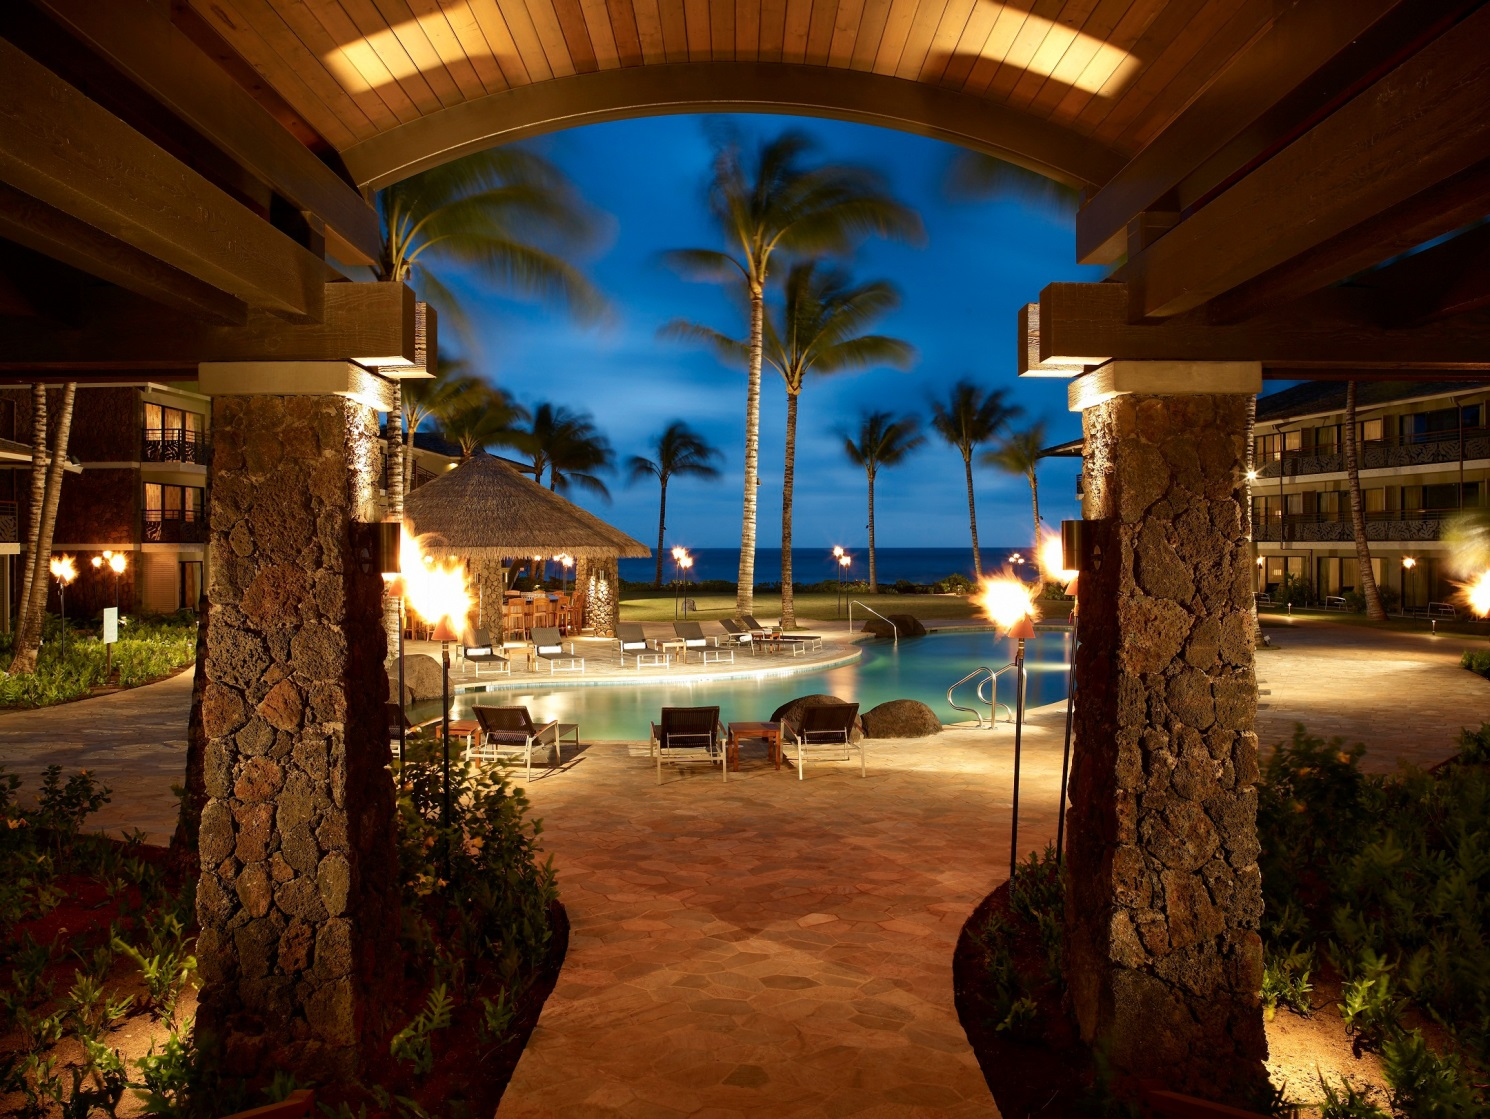 Hunger games in hawaii the islands 39 most glorious hotels for A touch of elegance salon kauai